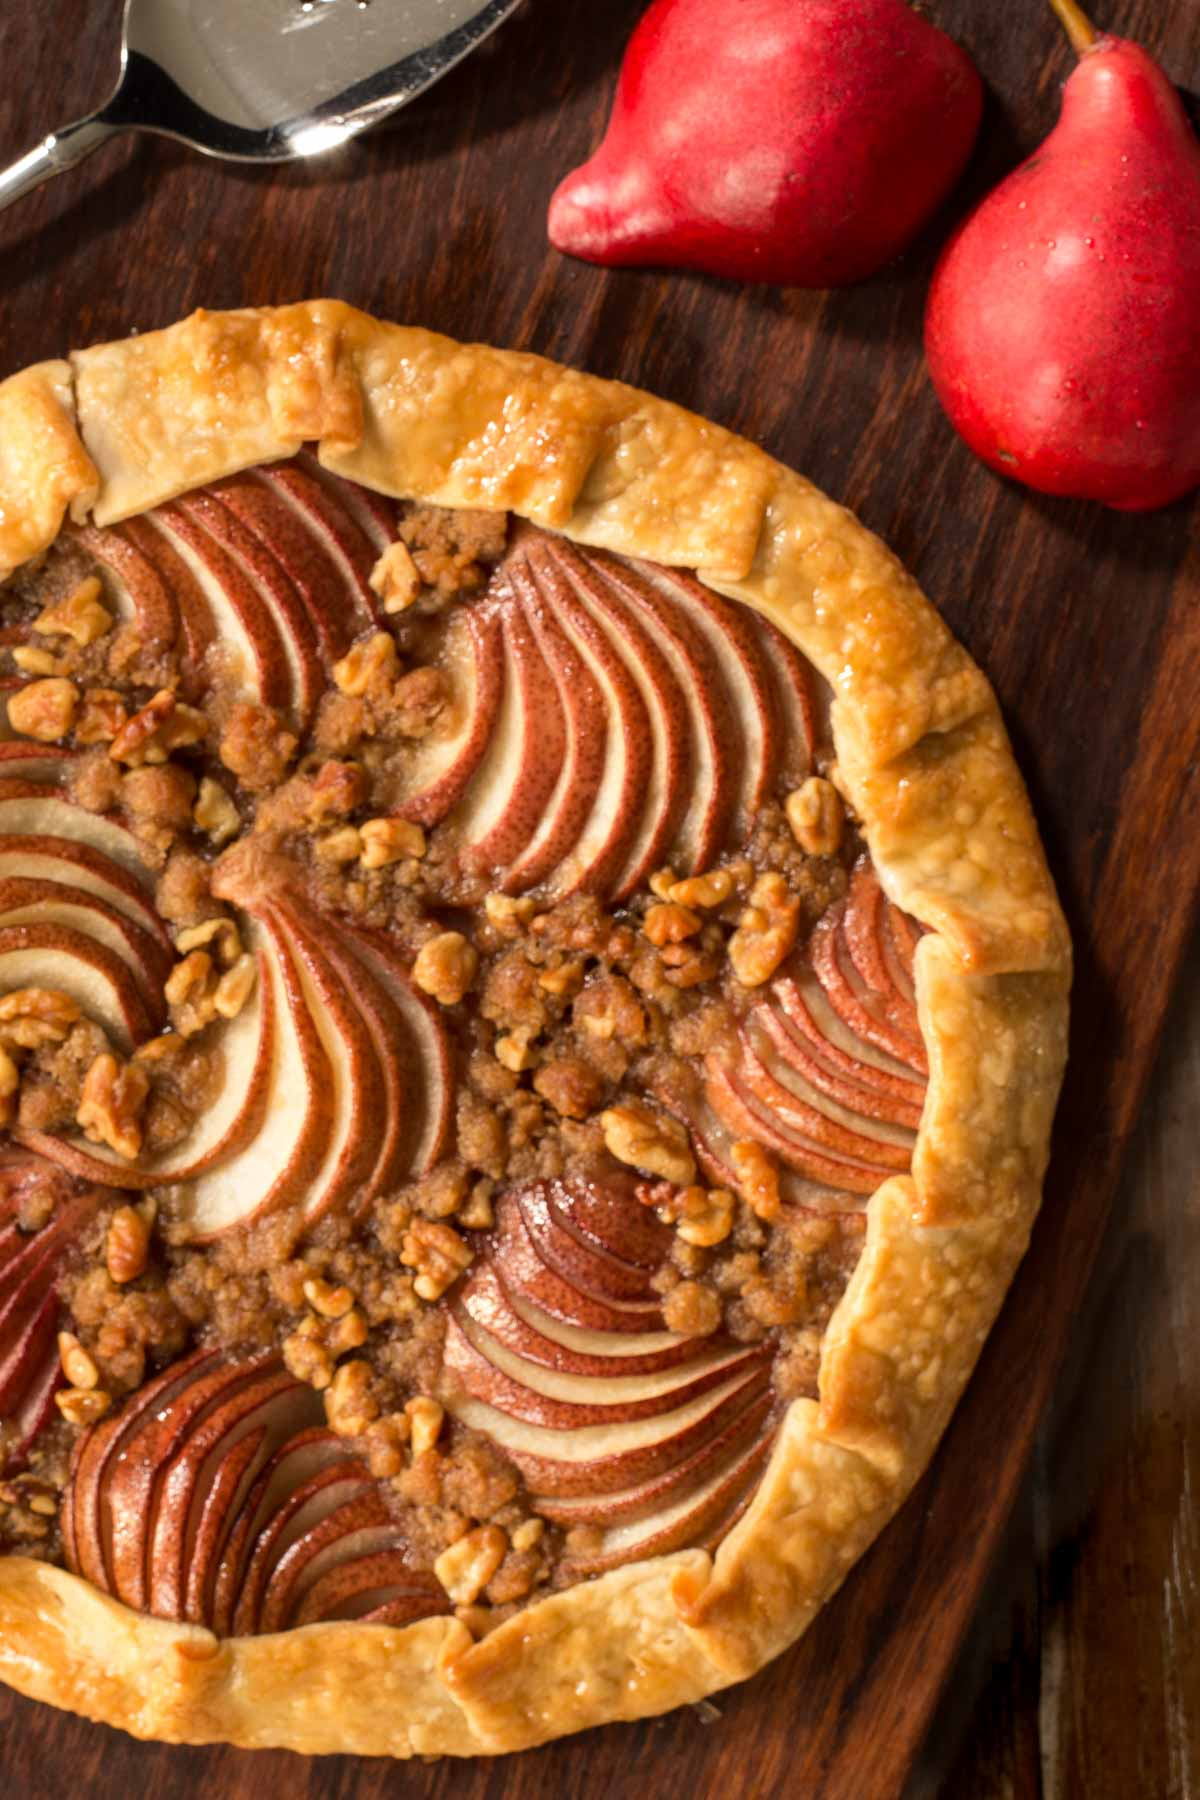 Overhead photo of a Maple-Glazed Red Pear Galette on a wooden cutting board.